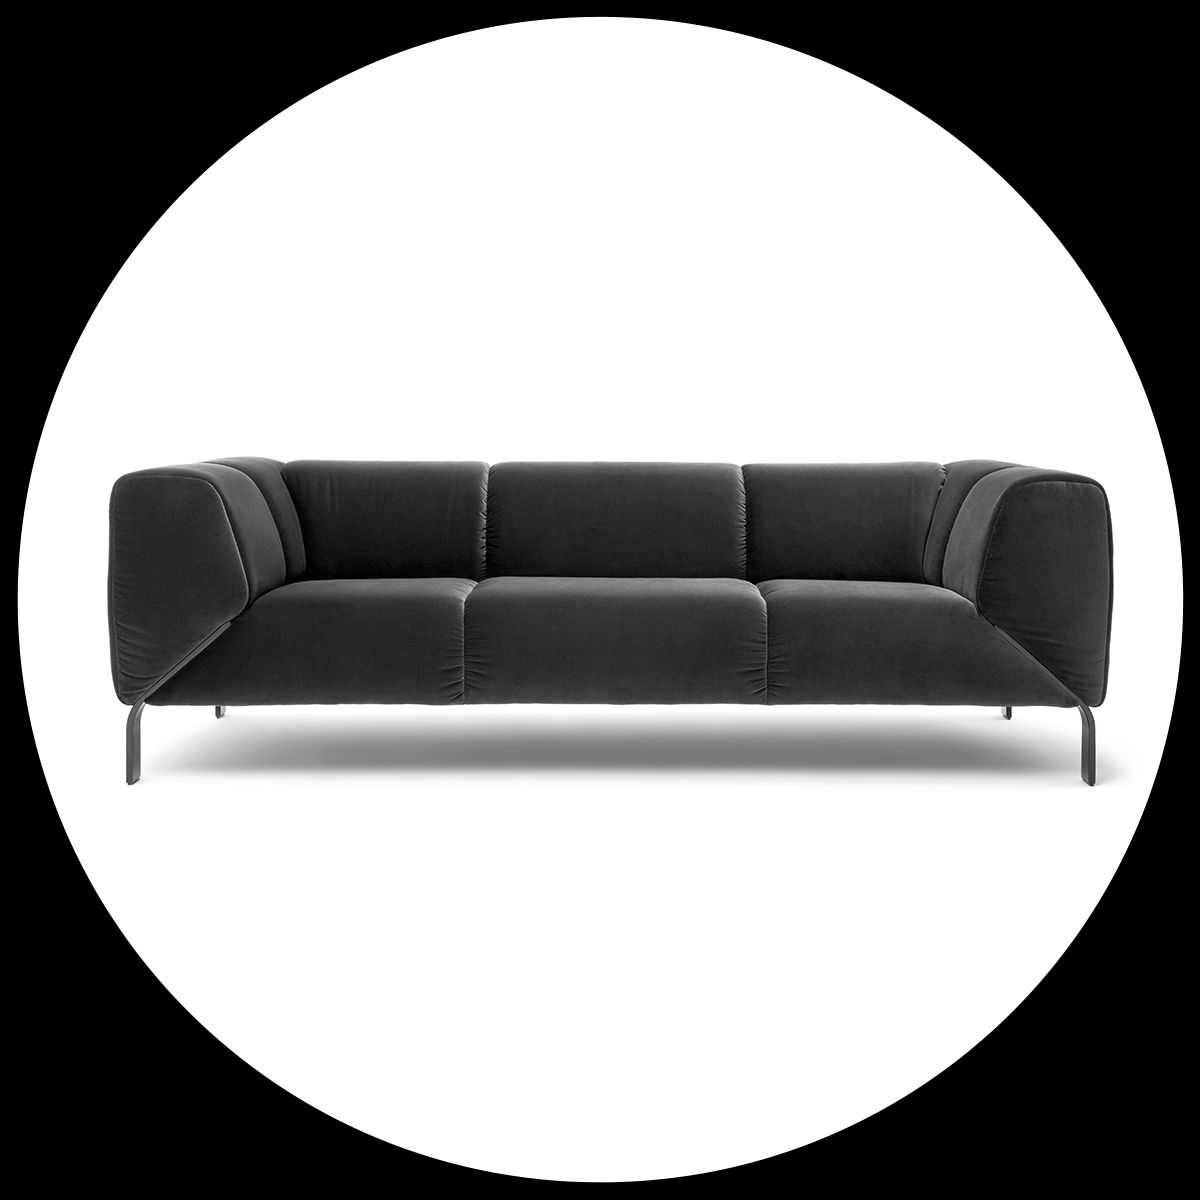 Black is the new black. The Rolf Benz 323 sofa.